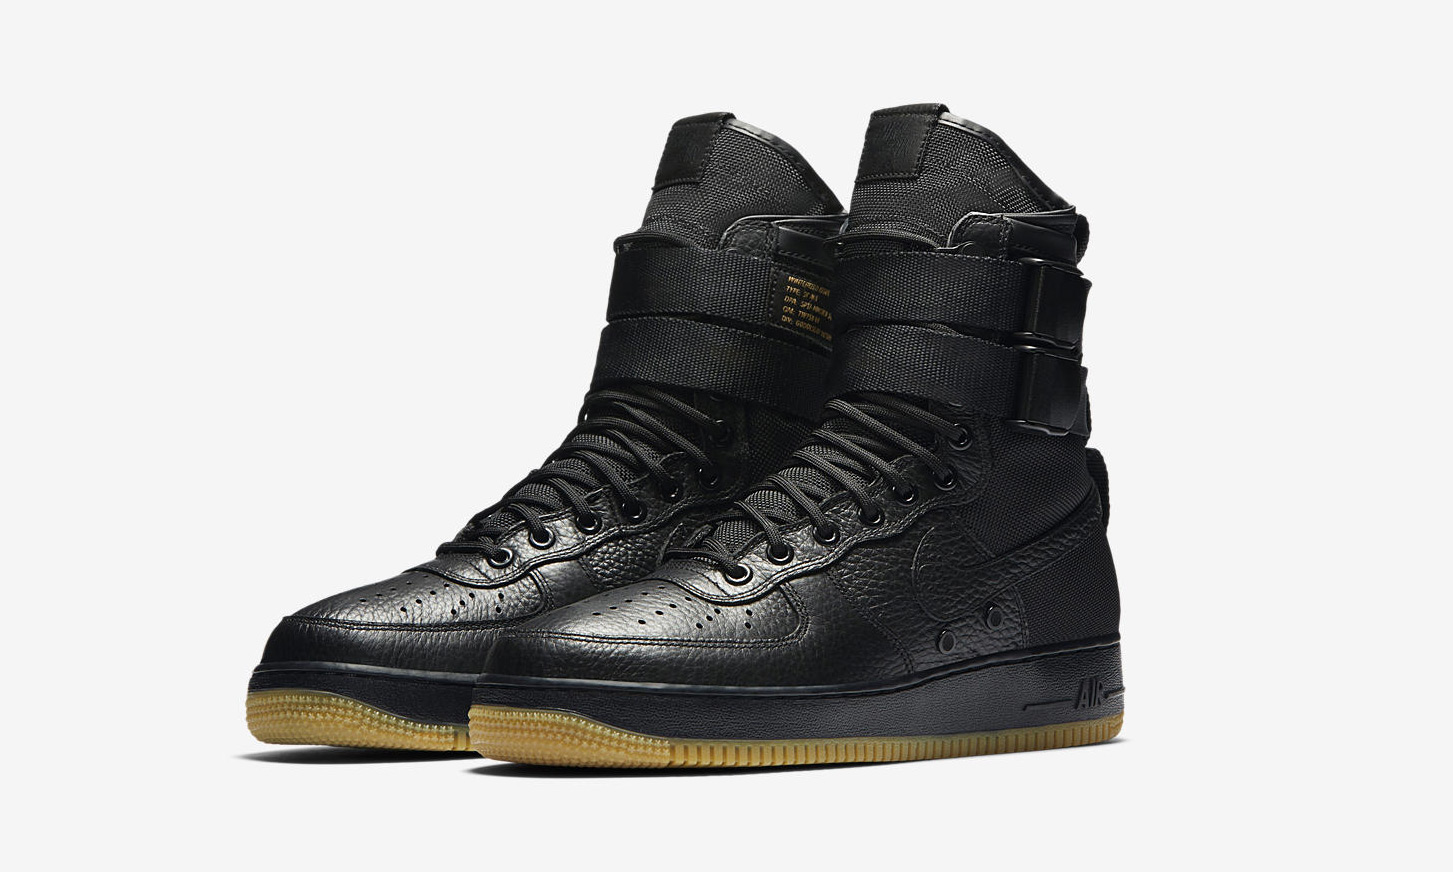 nike-special-forces-air-force-1-new-colors-3